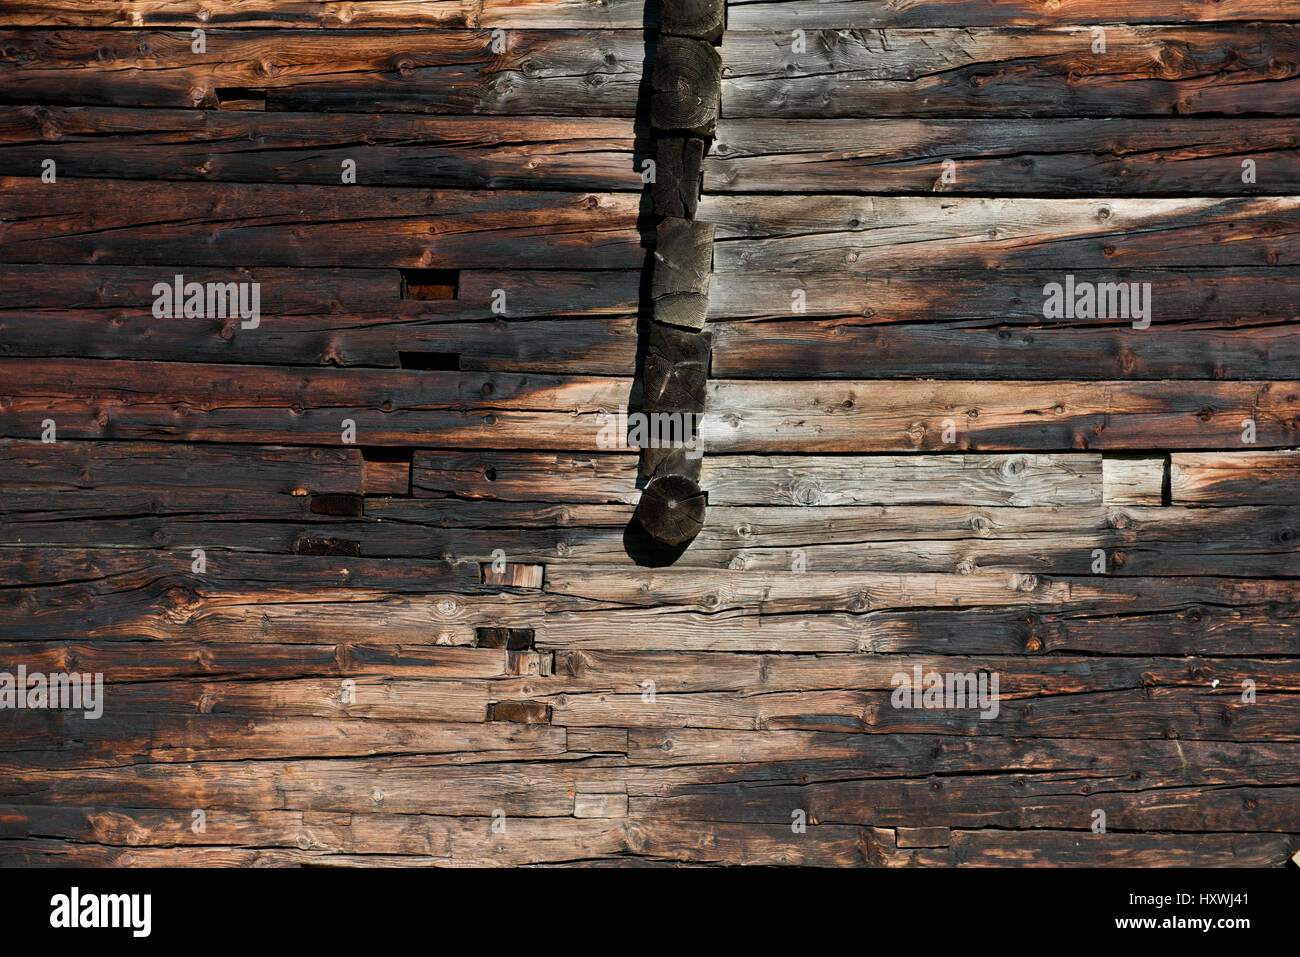 holz wand stock photos & holz wand stock images - alamy